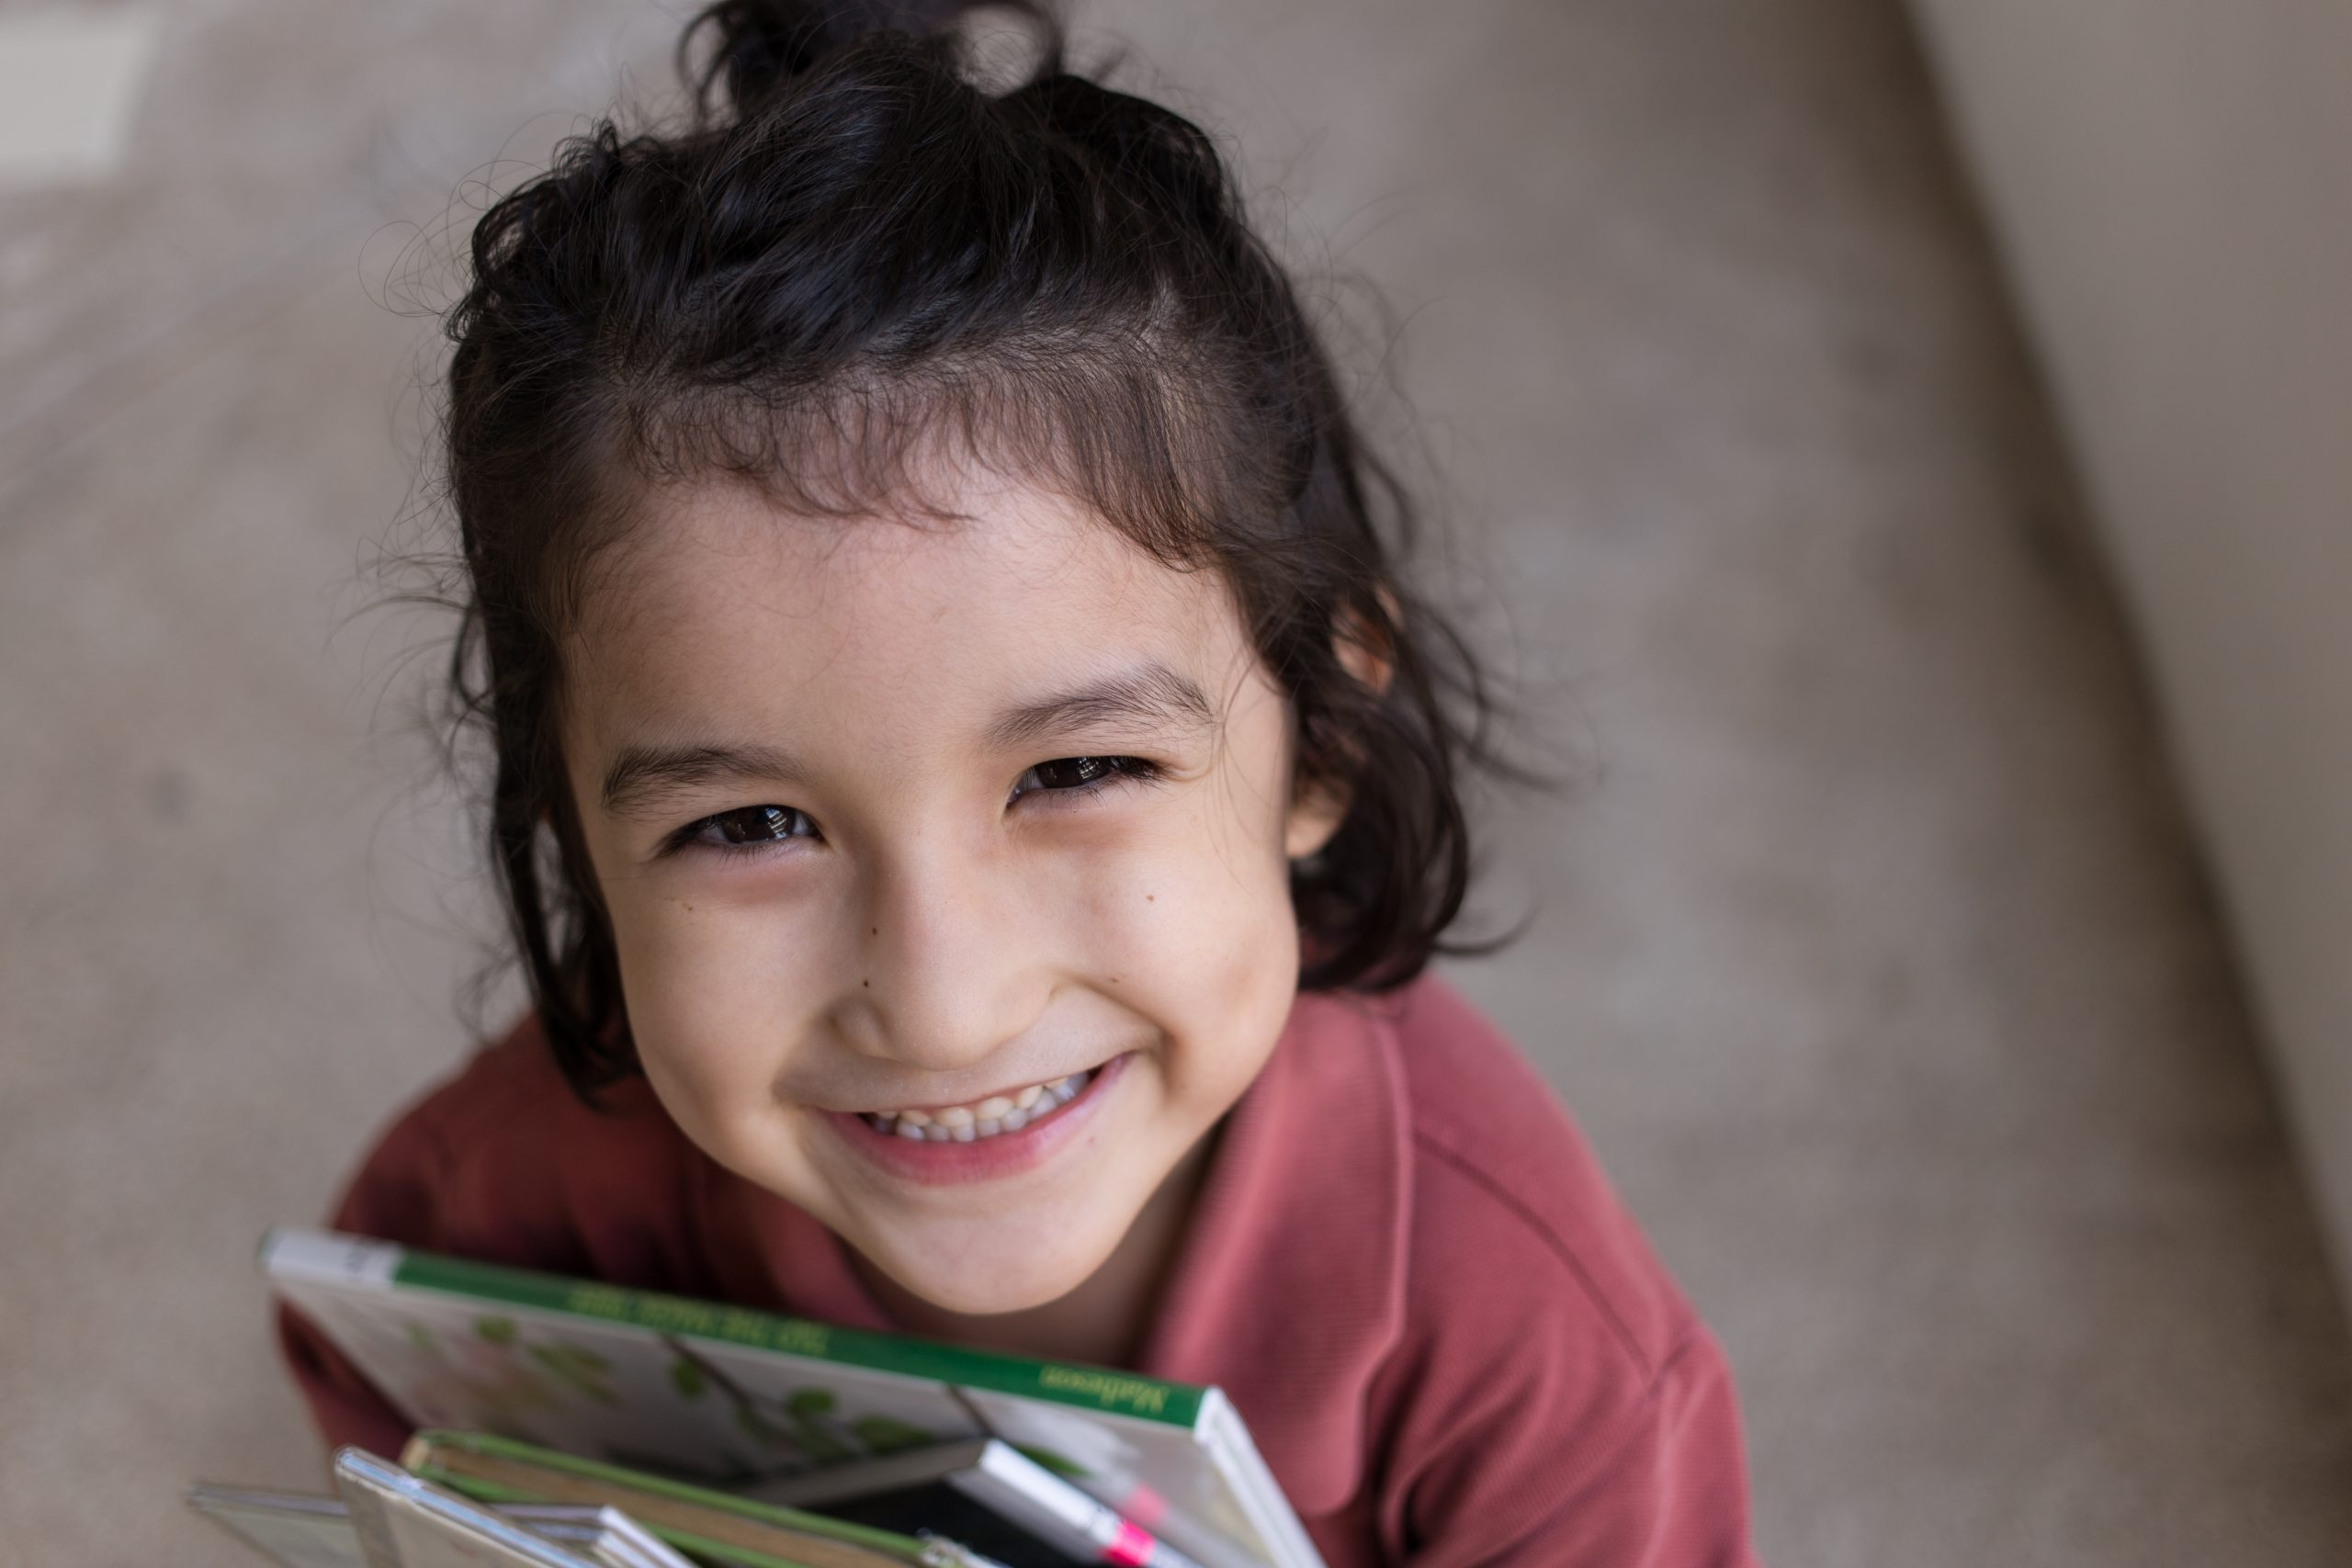 young girl with dark hair holding books and smiling